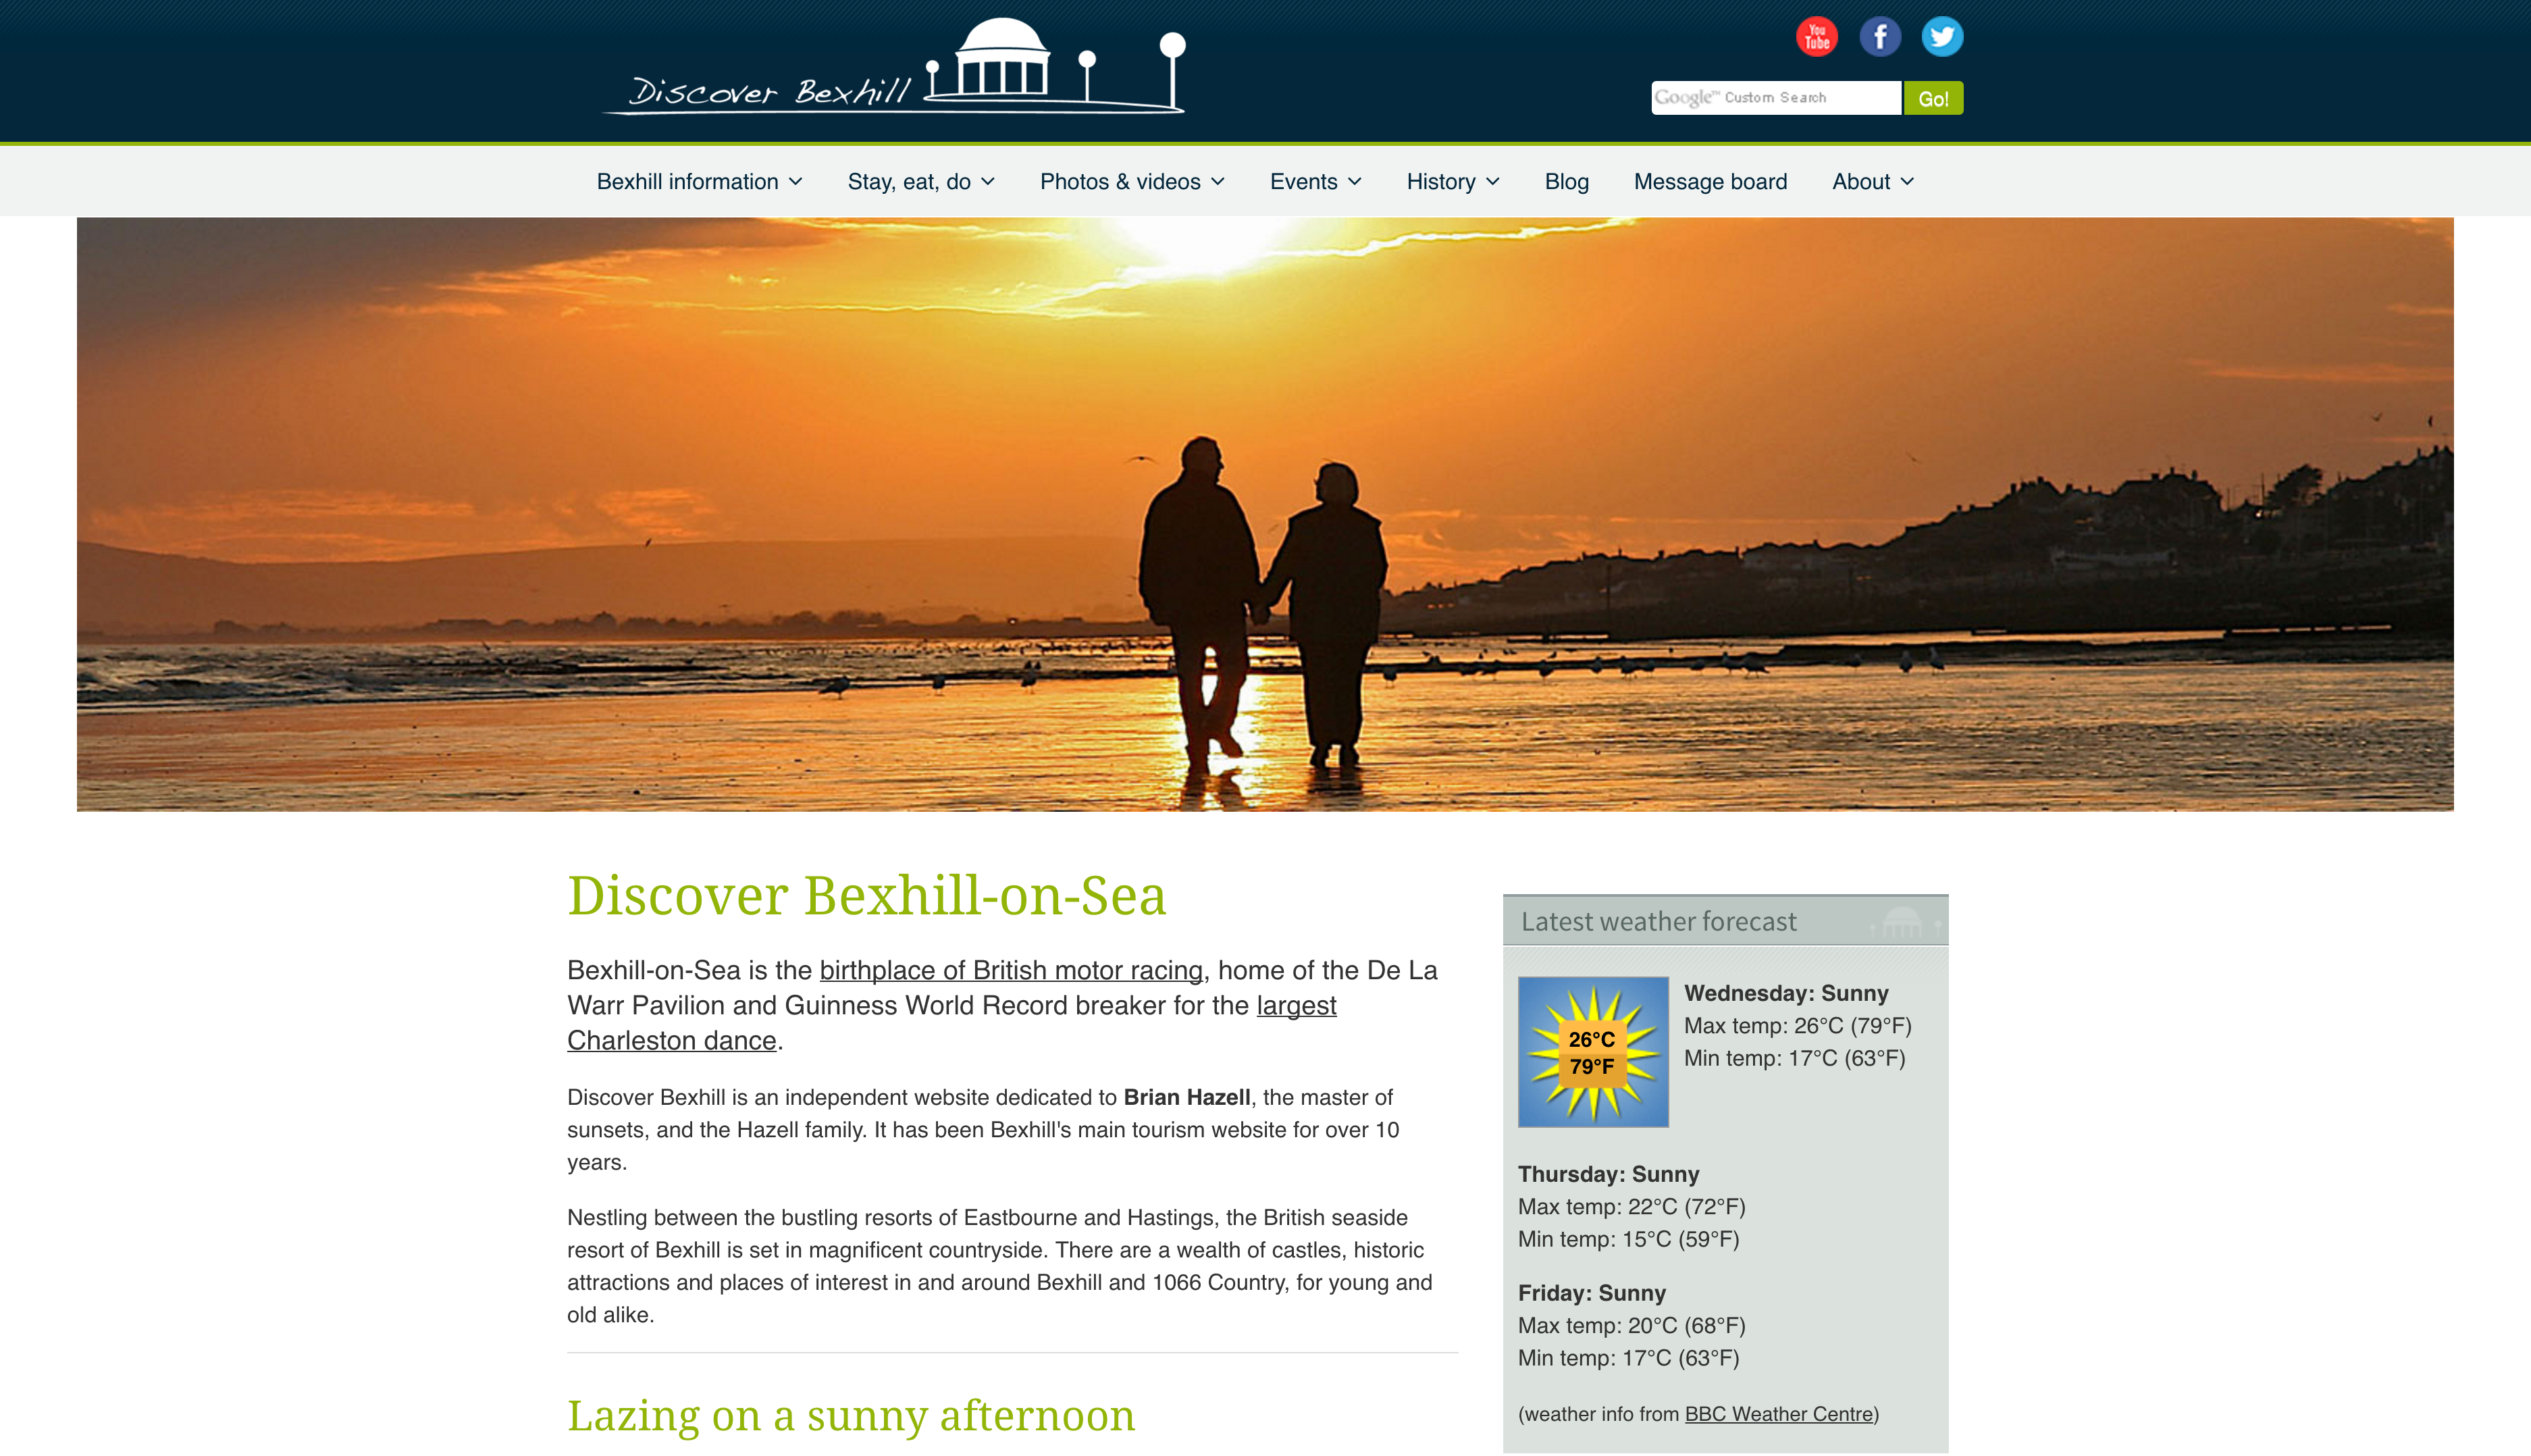 Discover Bexhill Screenshot